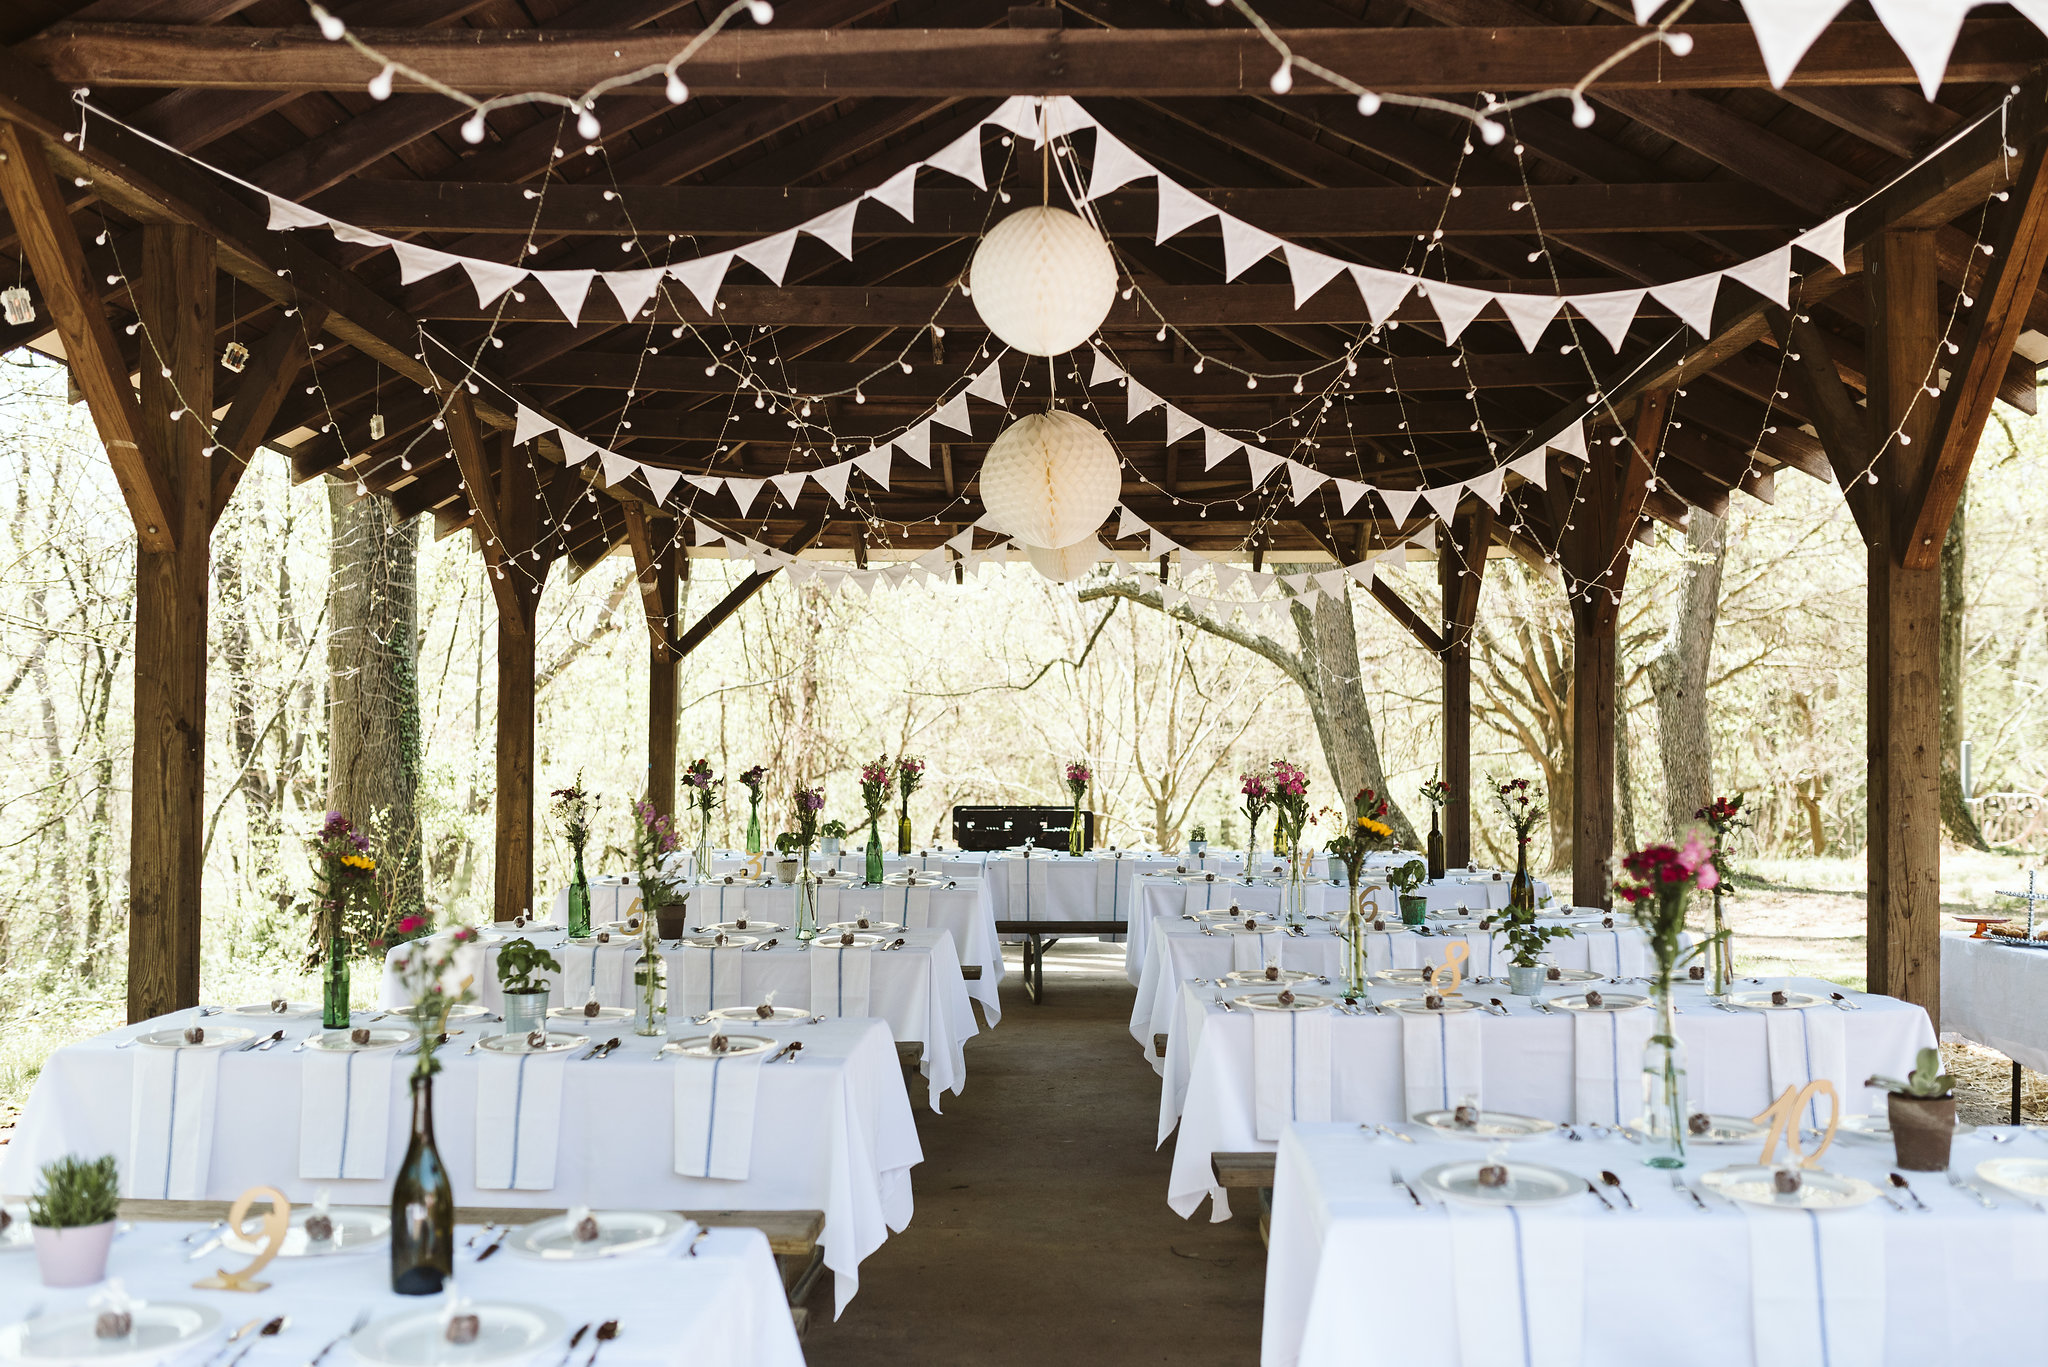 Spring Outdoor Wedding, Park, Baltimore Wedding Photographer, DIY, Classic, Upcycled, Garden Party, Romantic, Reception Decor, White Bunting and Twinkle Lights